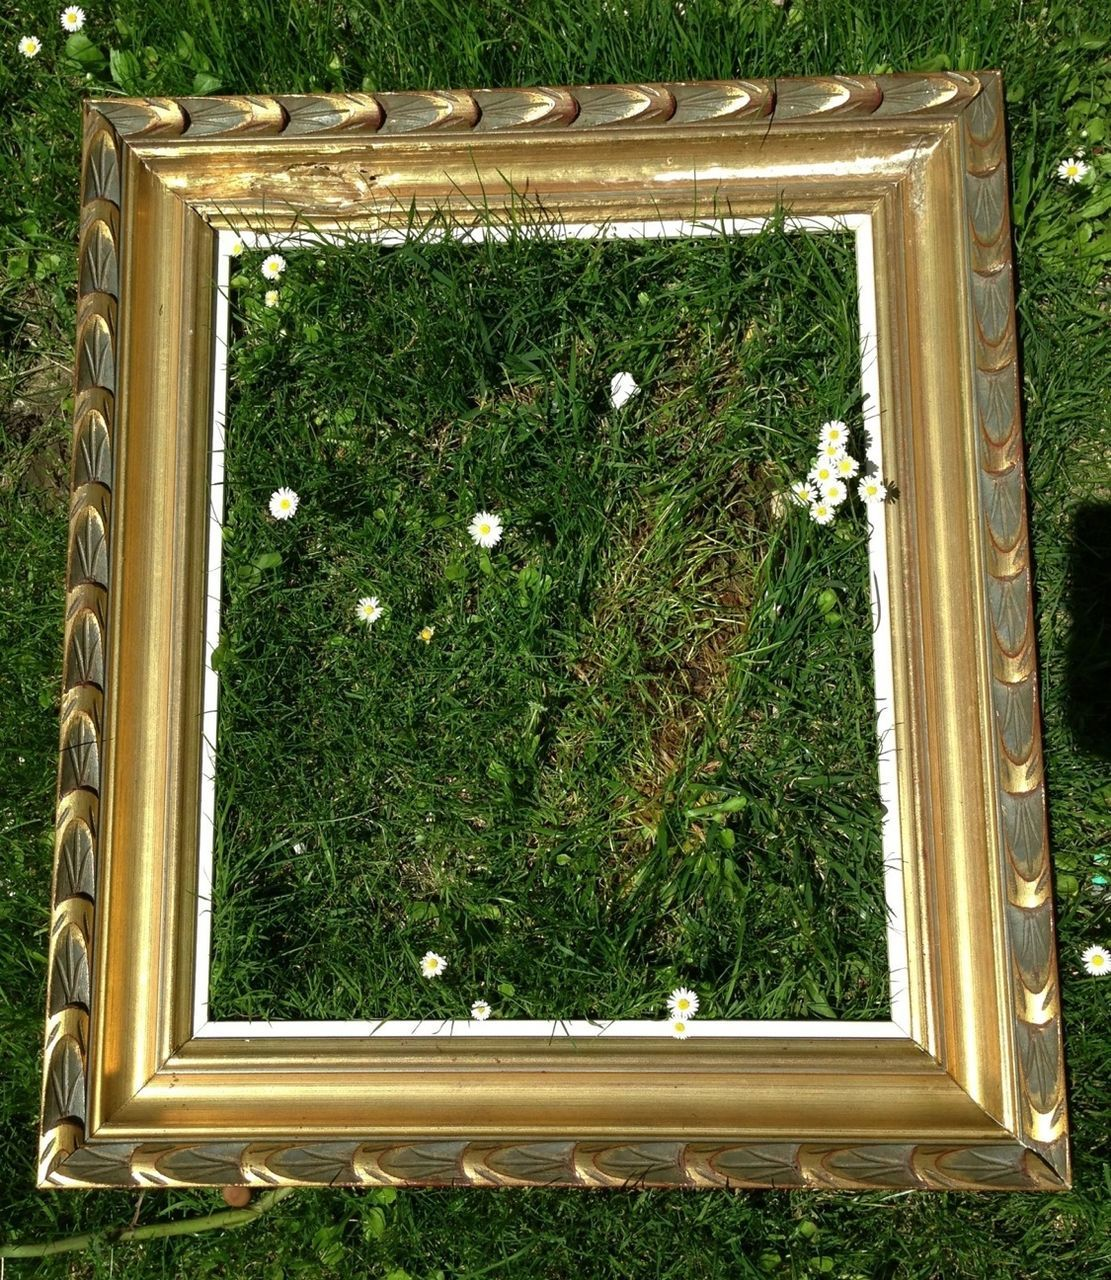 Close-Up Of Abandoned Picture Frame On Grassy Field